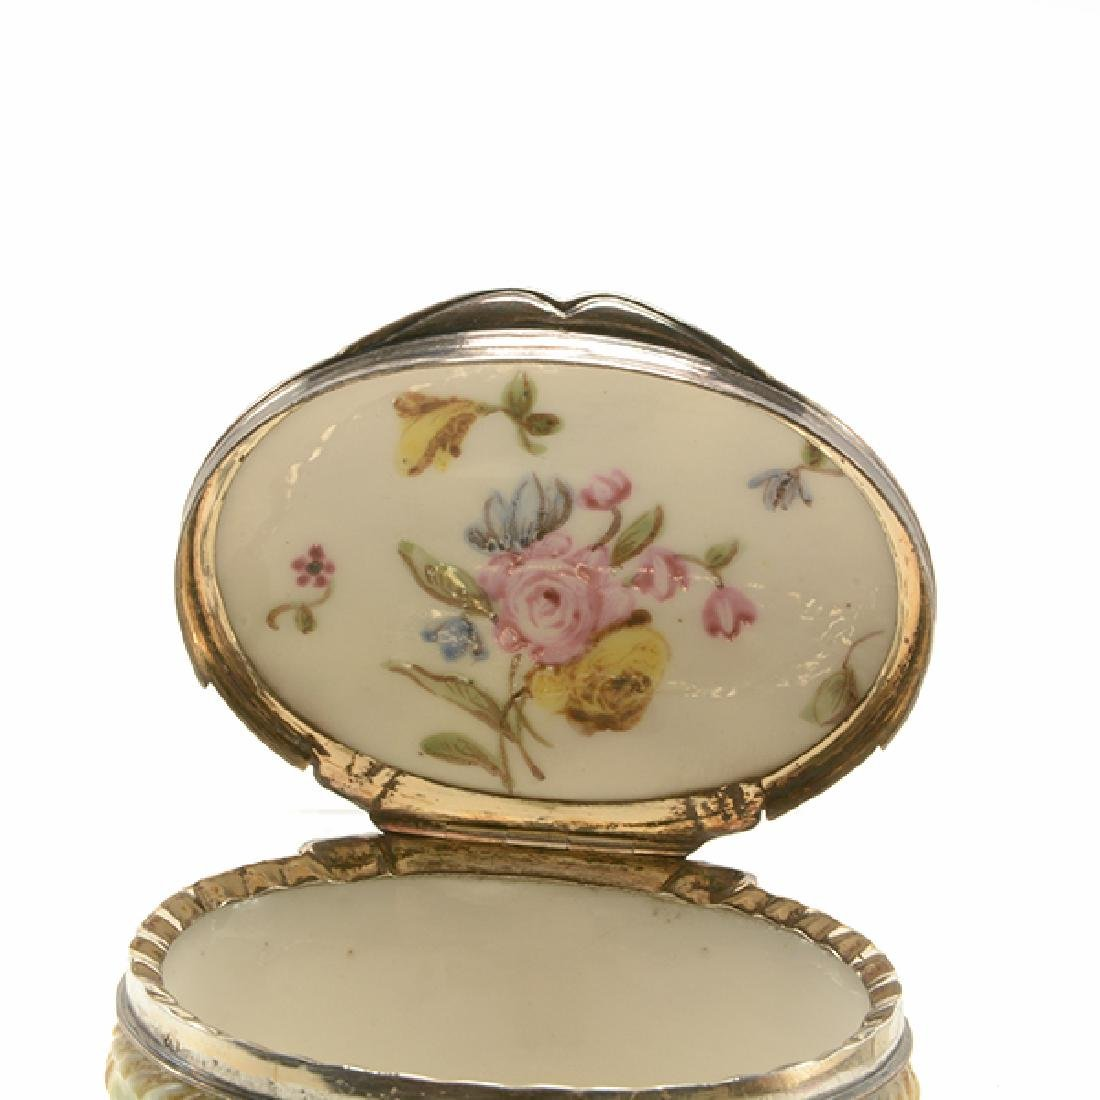 French Mennecy Silver Mounted Porcelain Snuff Box - 5